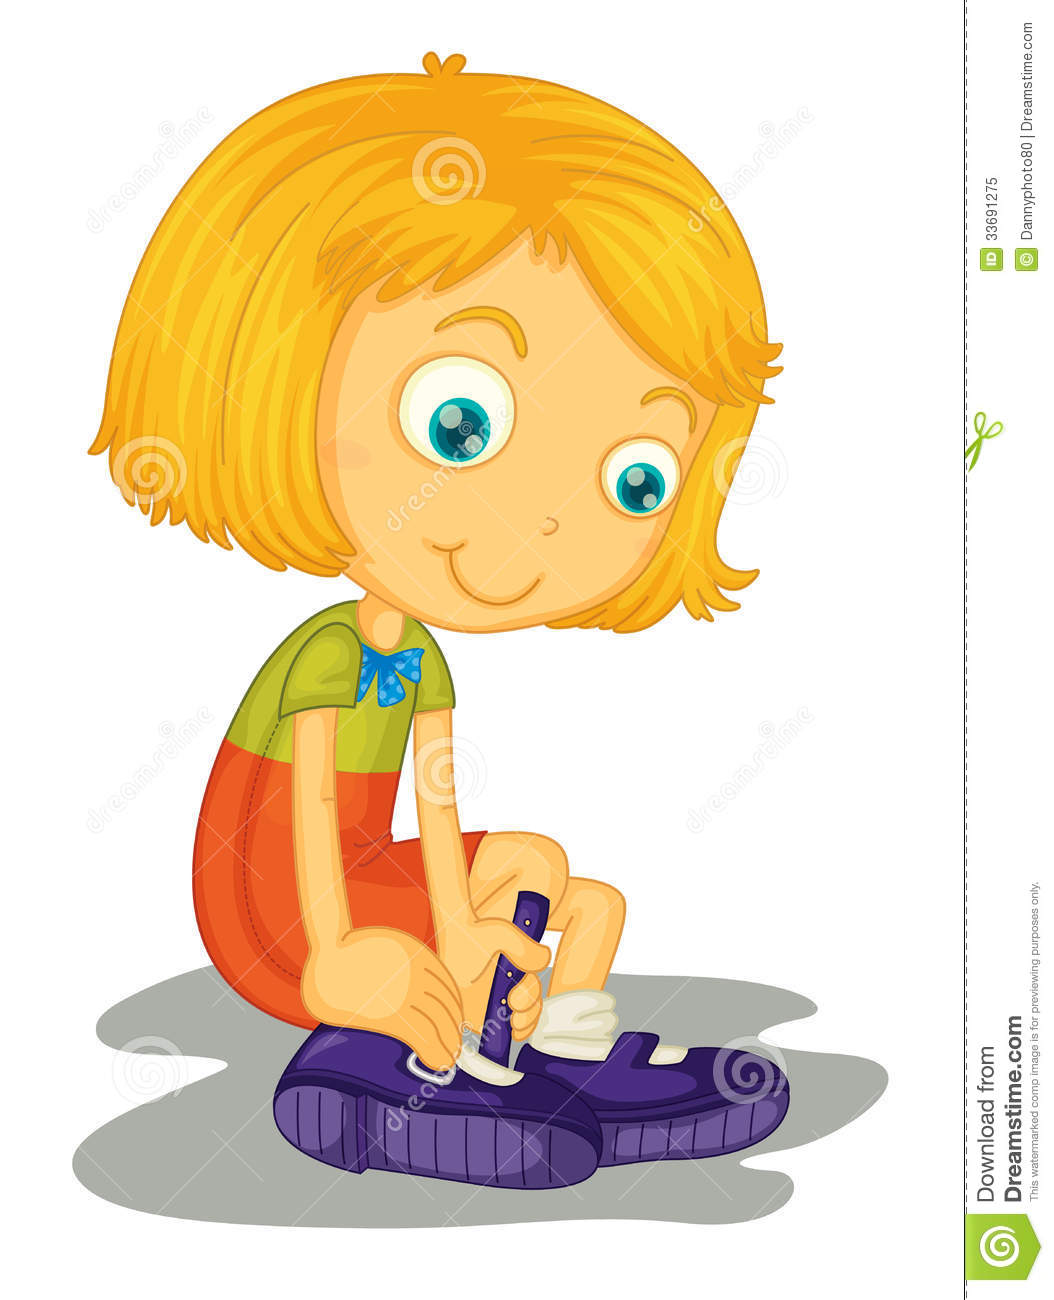 girl buckles shoes royalty free stock photo image 33691275 vector shoes free download victor shoes badminton